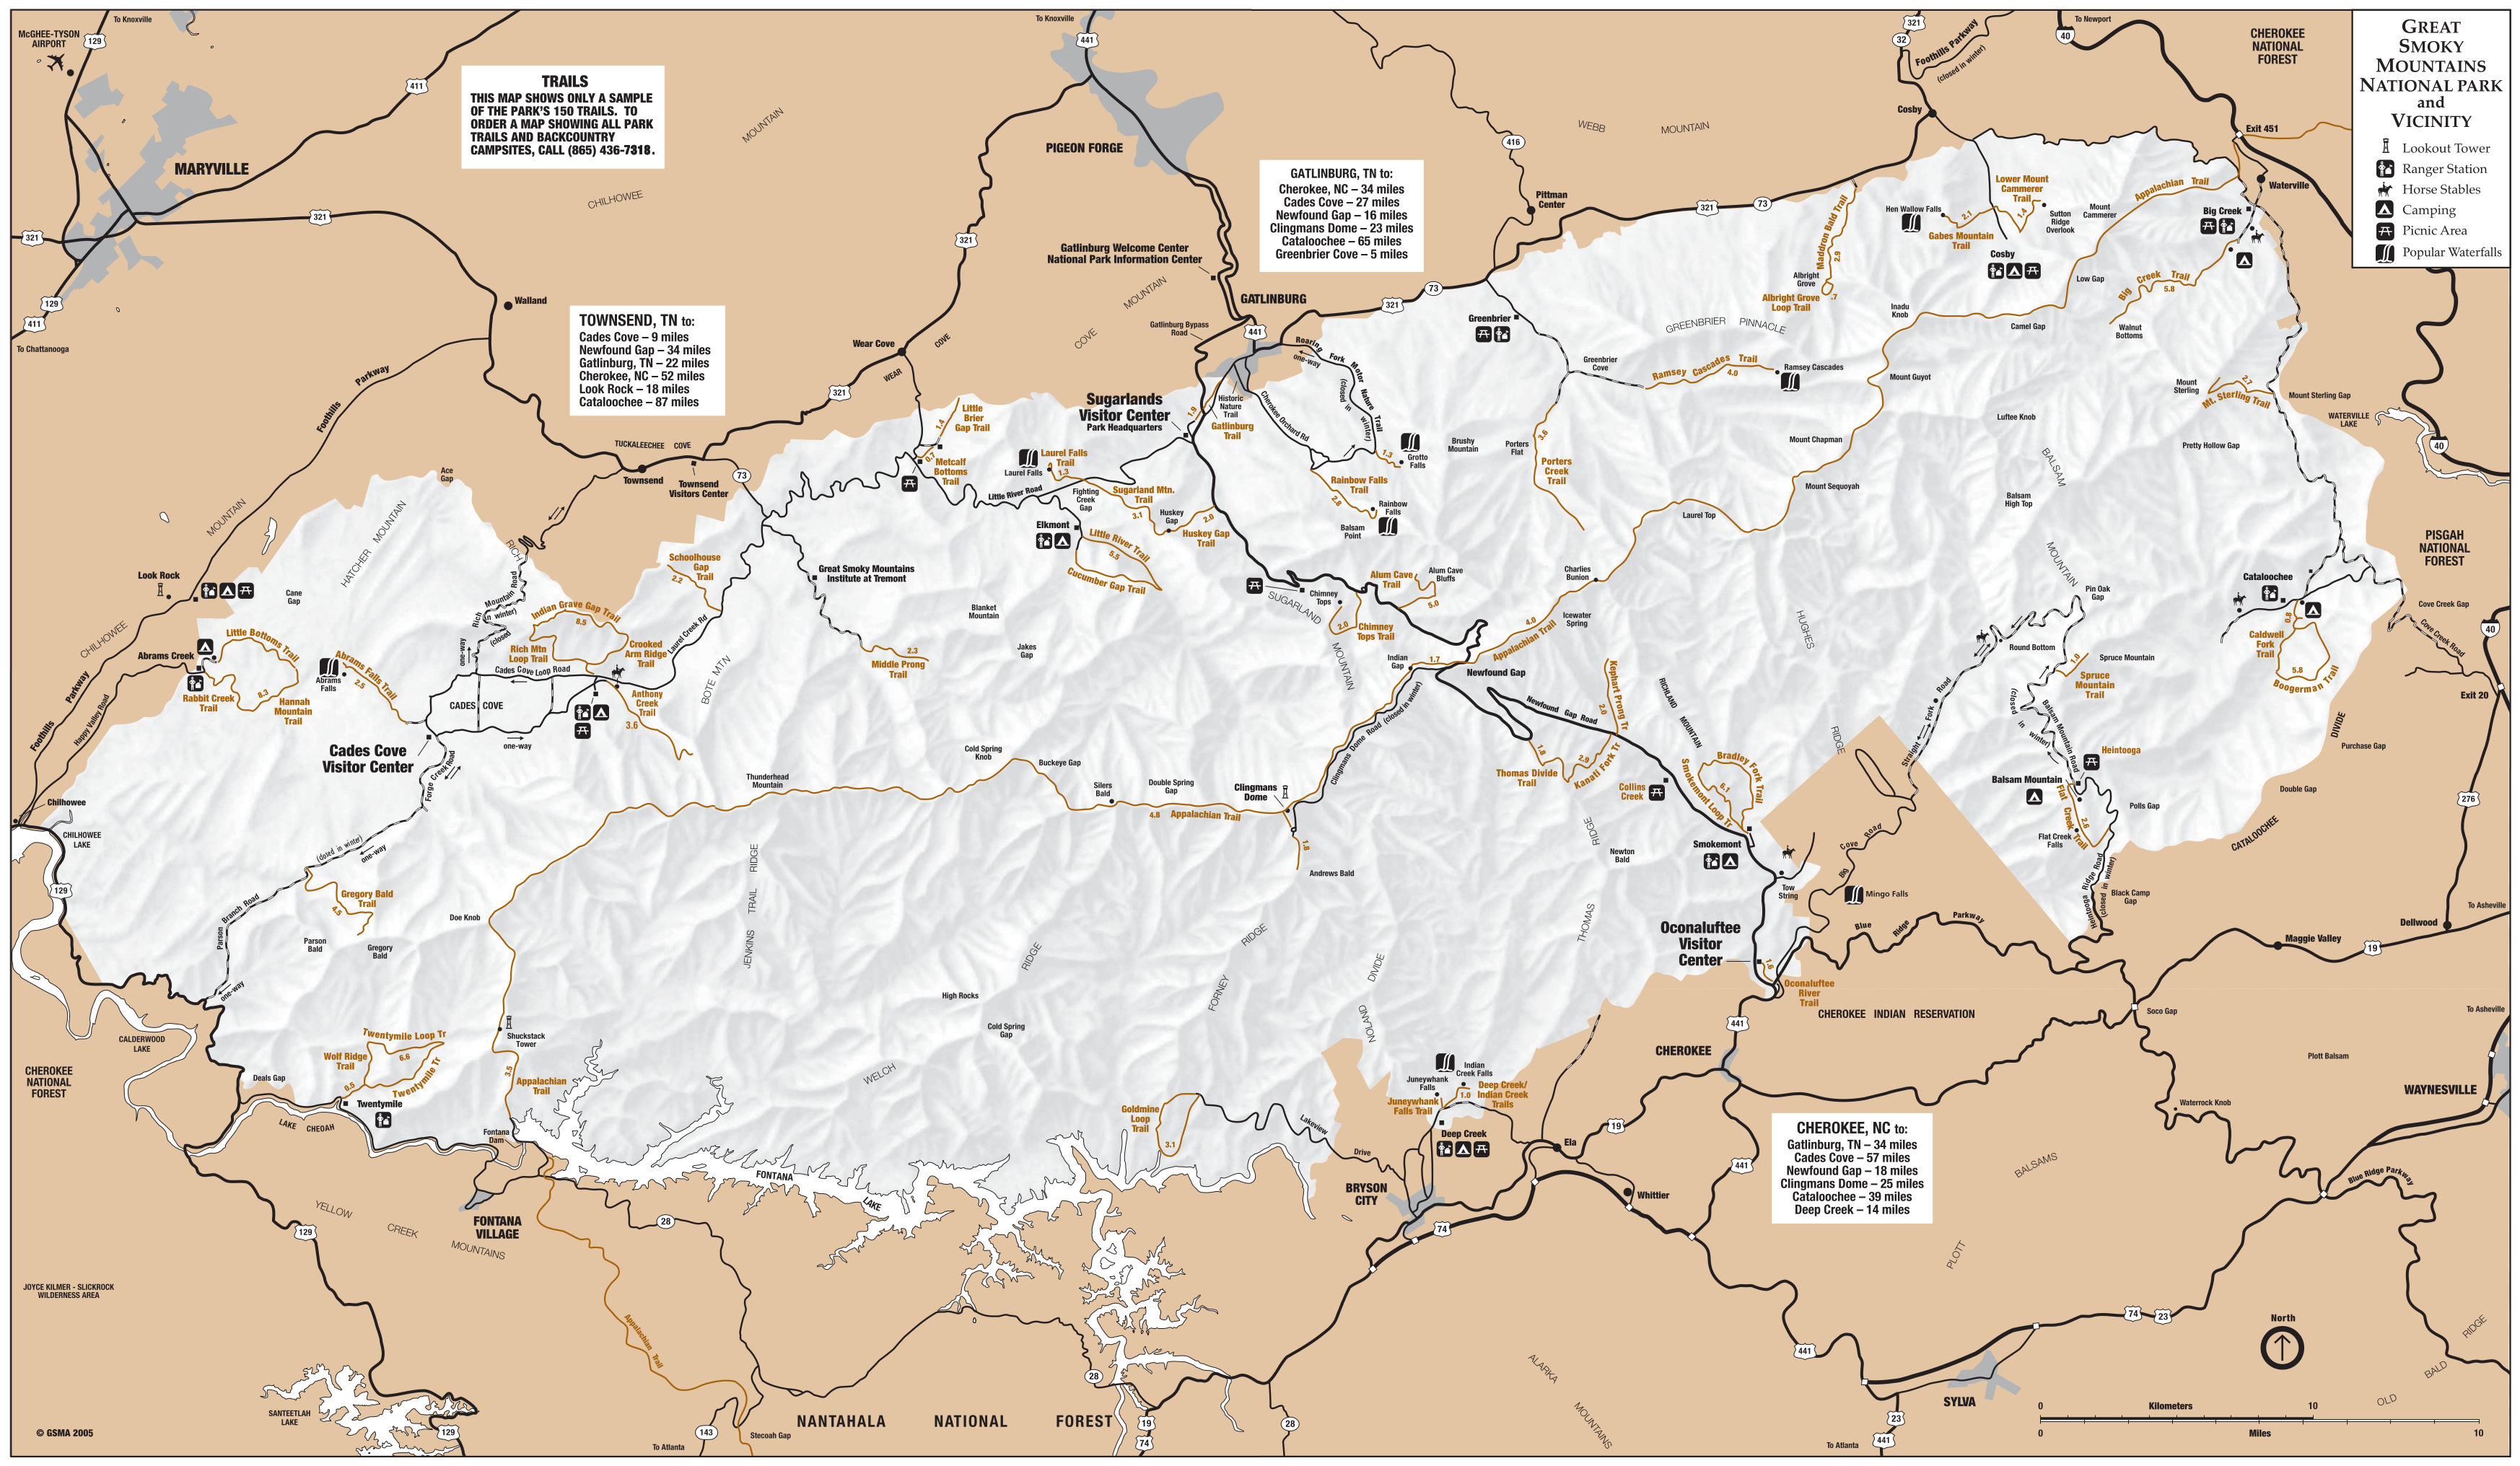 Smoky Mountain National Park Map Great Smoky Mountains Maps | NPMaps.  just free maps, period. Smoky Mountain National Park Map